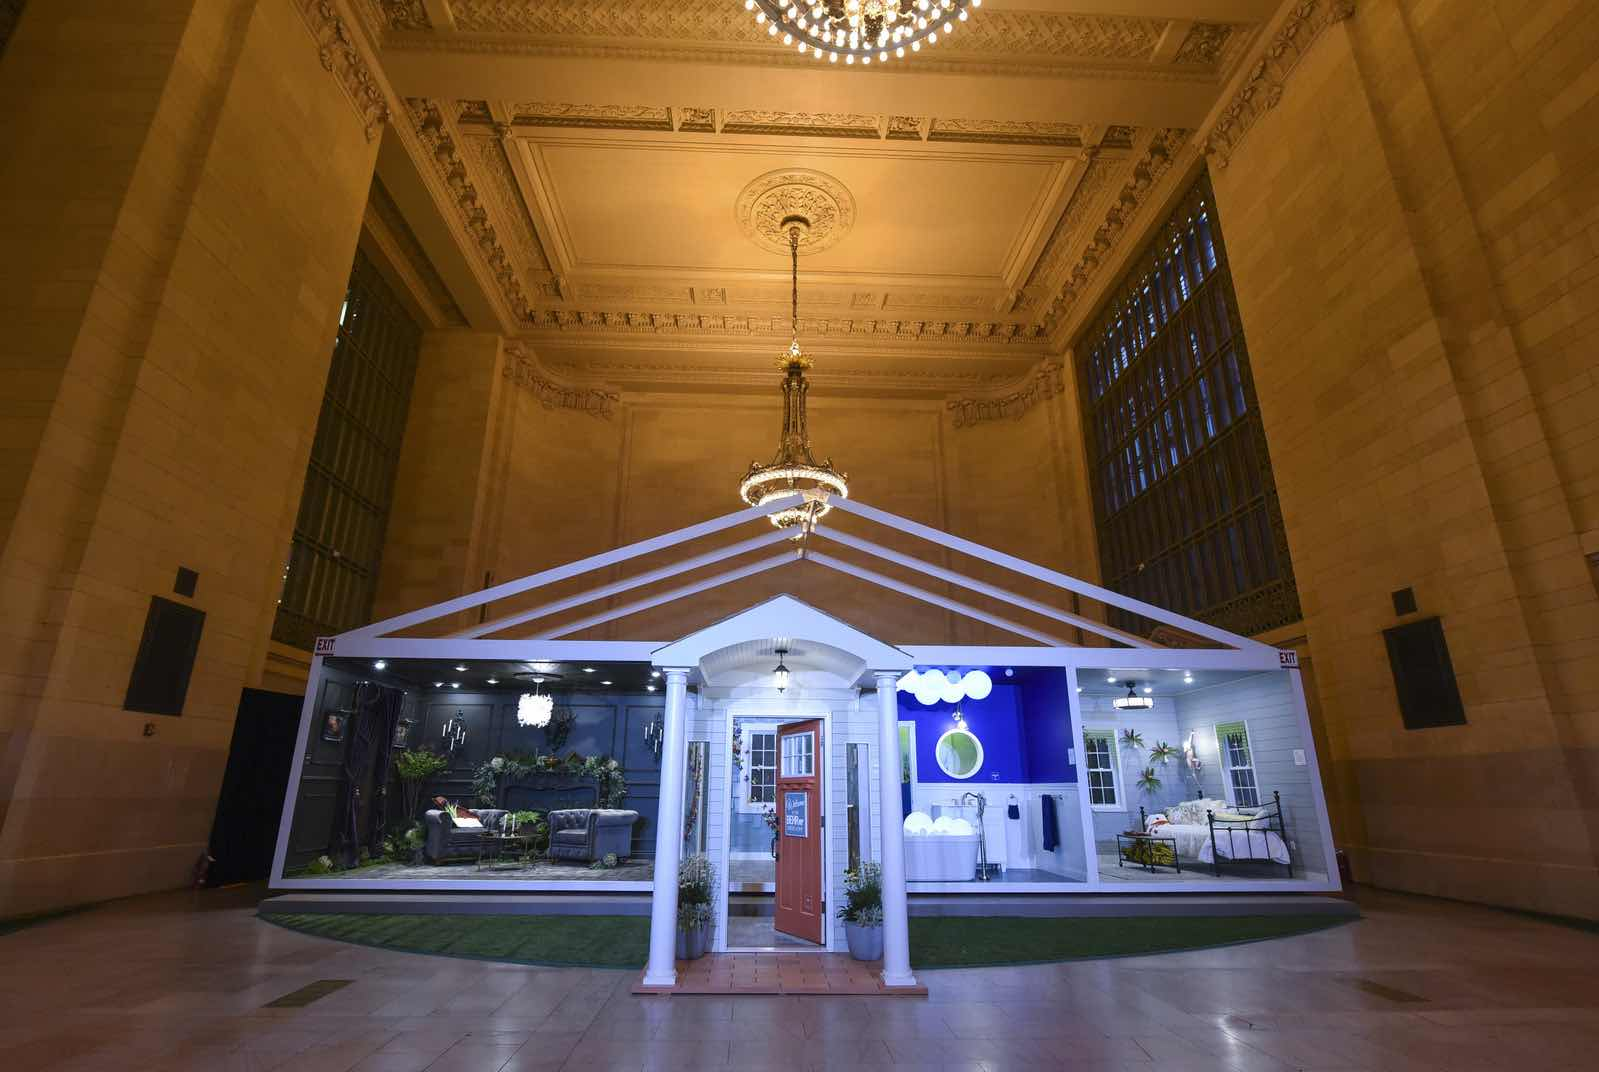 behr paint vr product popup grand central station nyc